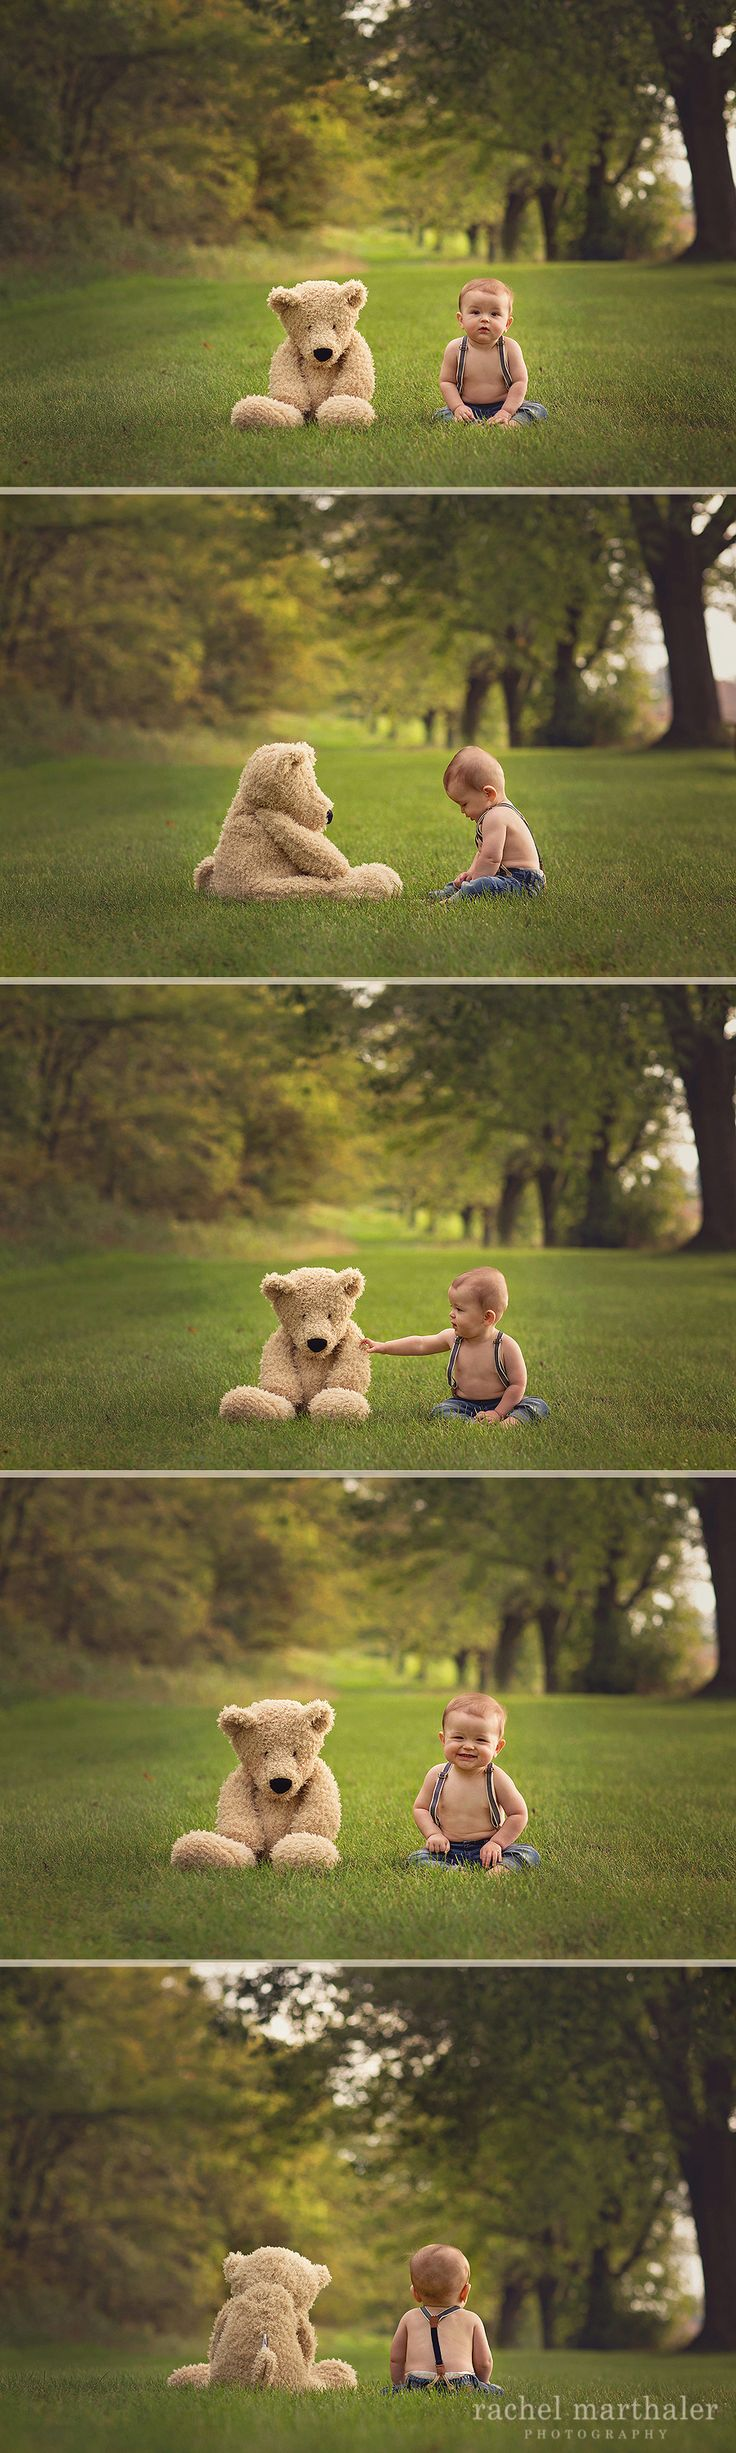 Baby Teddy Bear Photo, 8 month photo baby boy, Teddy bear, Twin Cities…